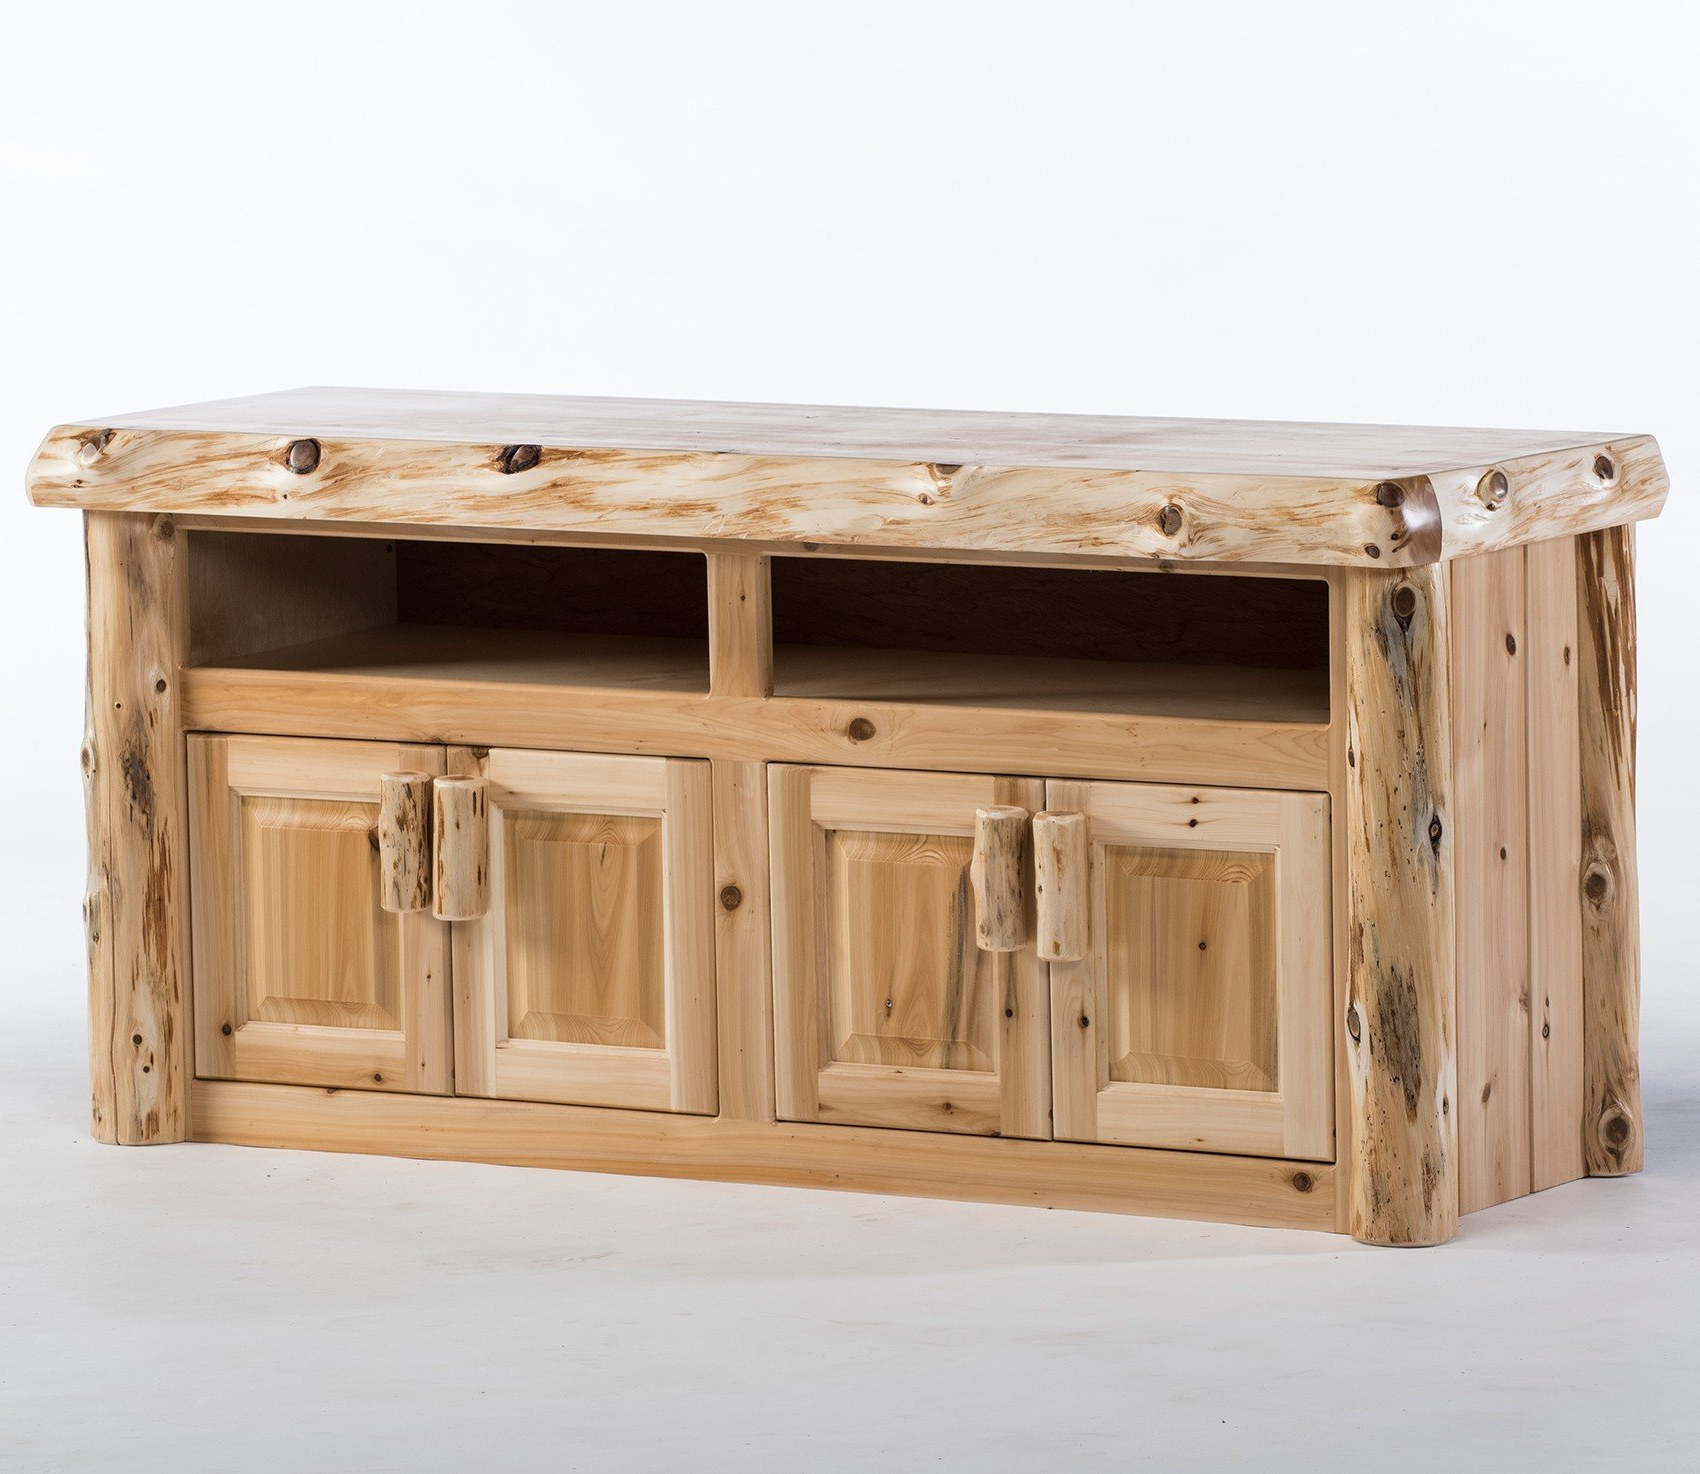 Recent Reclaimed Wood Tv Stands & Rustic Tv Stands: Log Tv Stand & Rustic Regarding Rustic Wood Tv Cabinets (View 11 of 20)